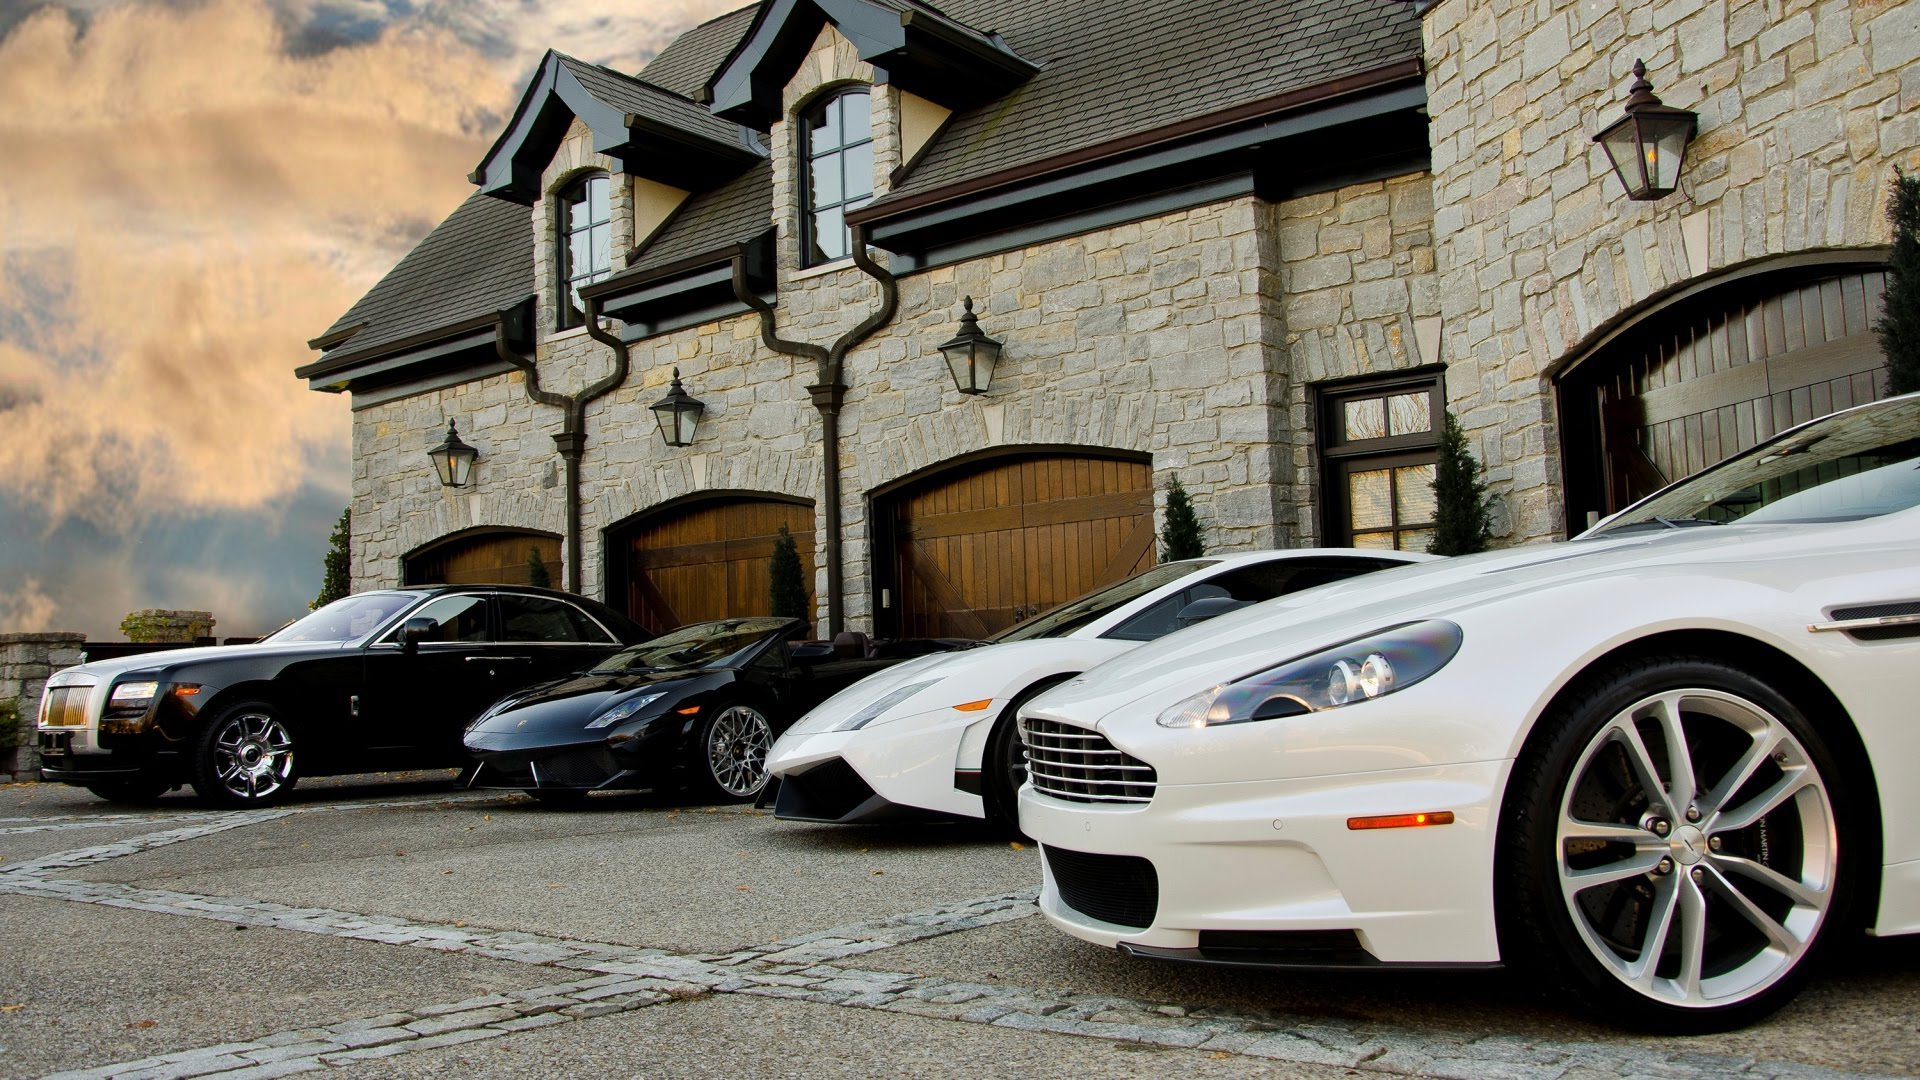 Is There More of a Demand for Luxury Agents?